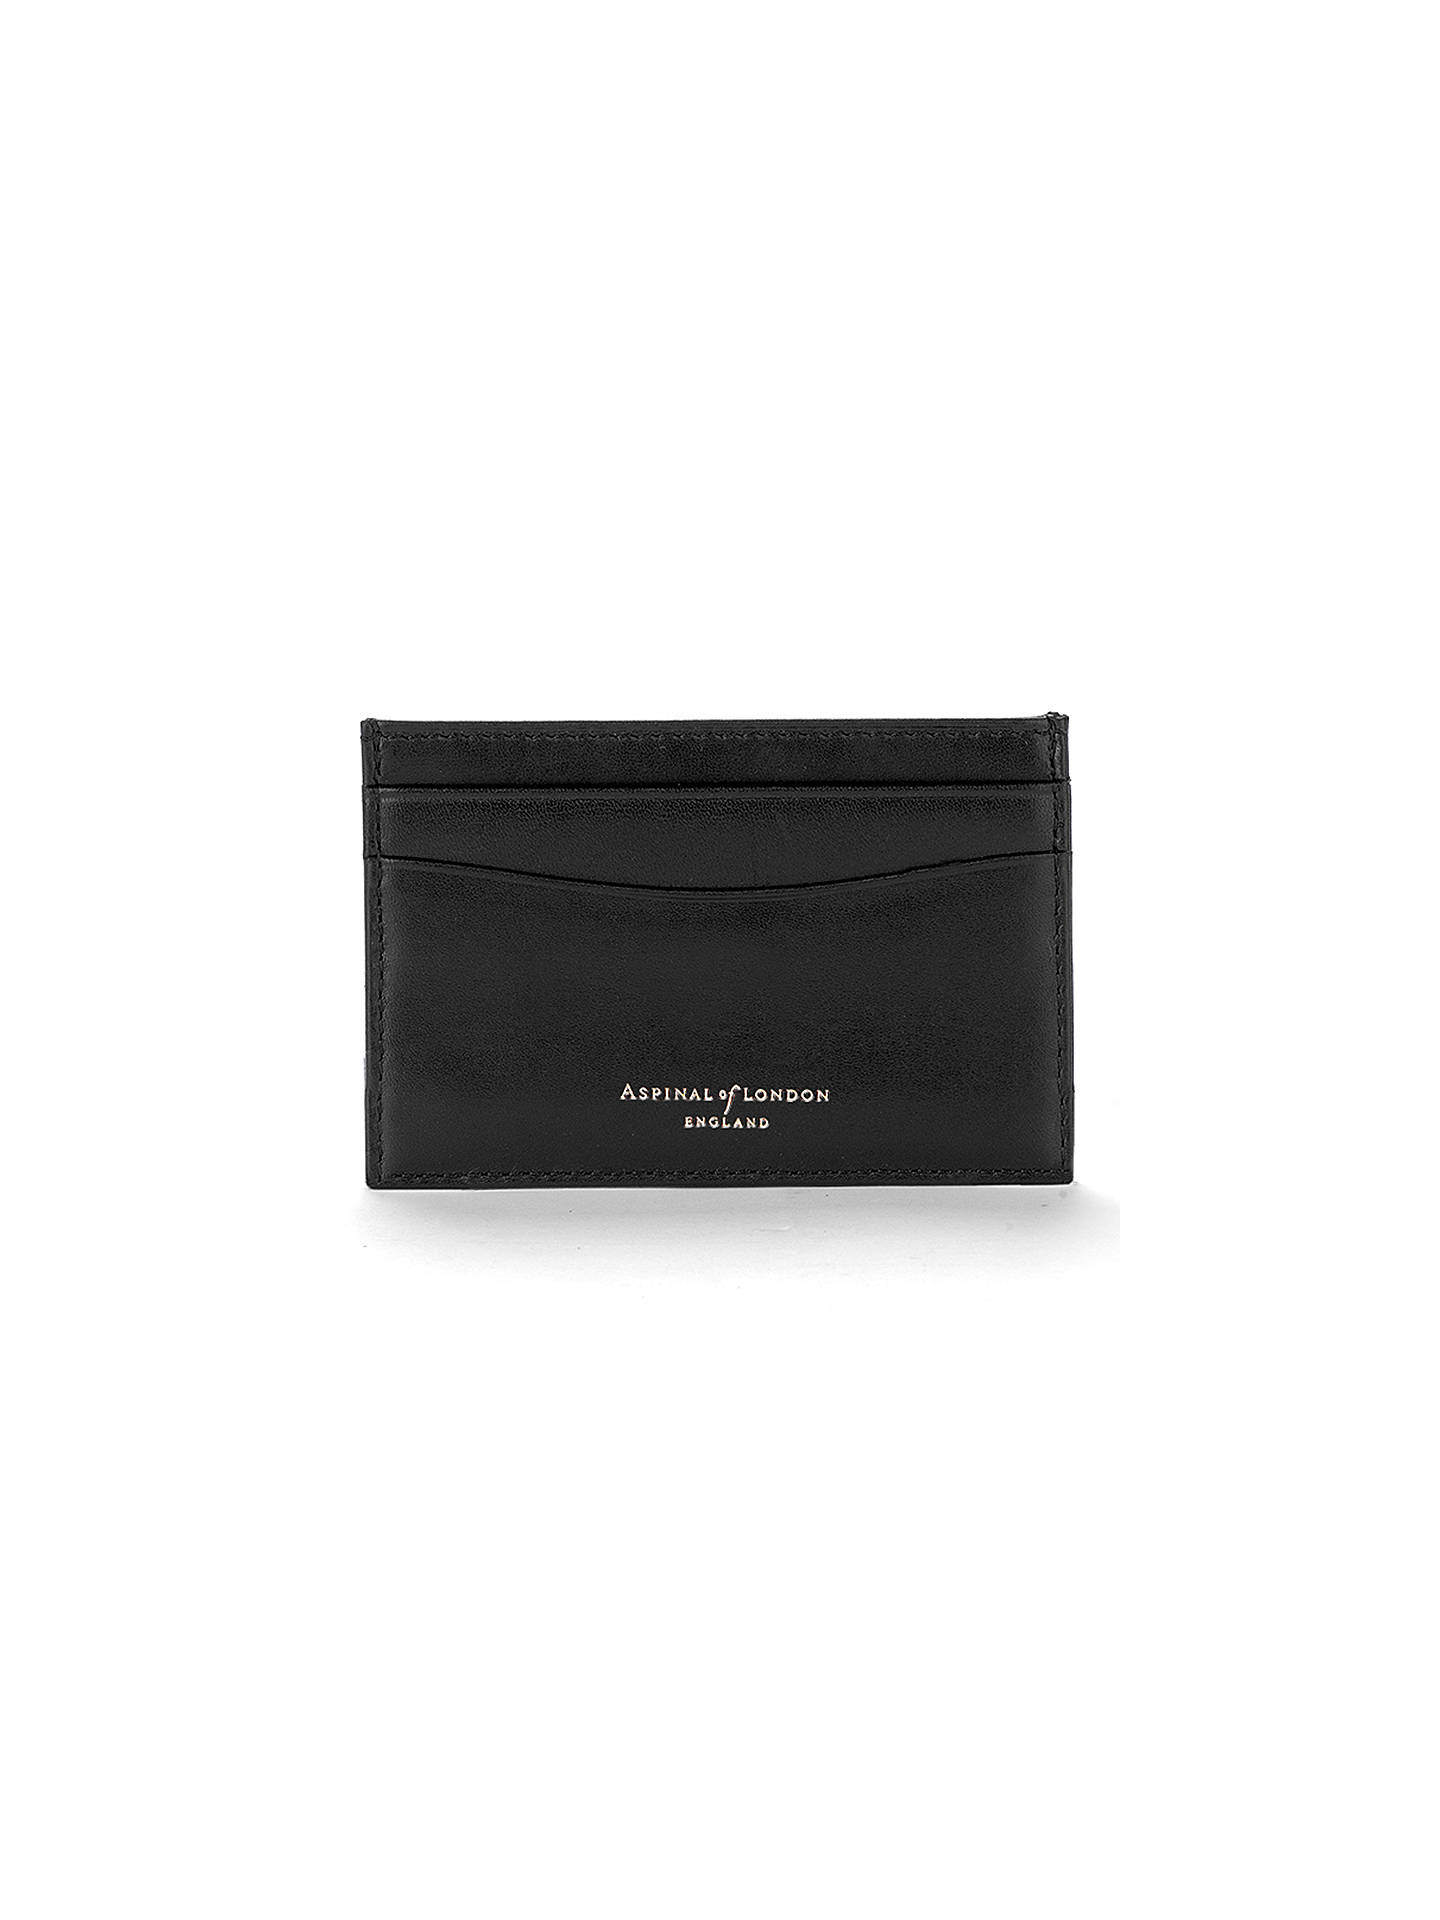 1cf88e7d8be6 Aspinal of London Leather Slim Credit Card Case, Black